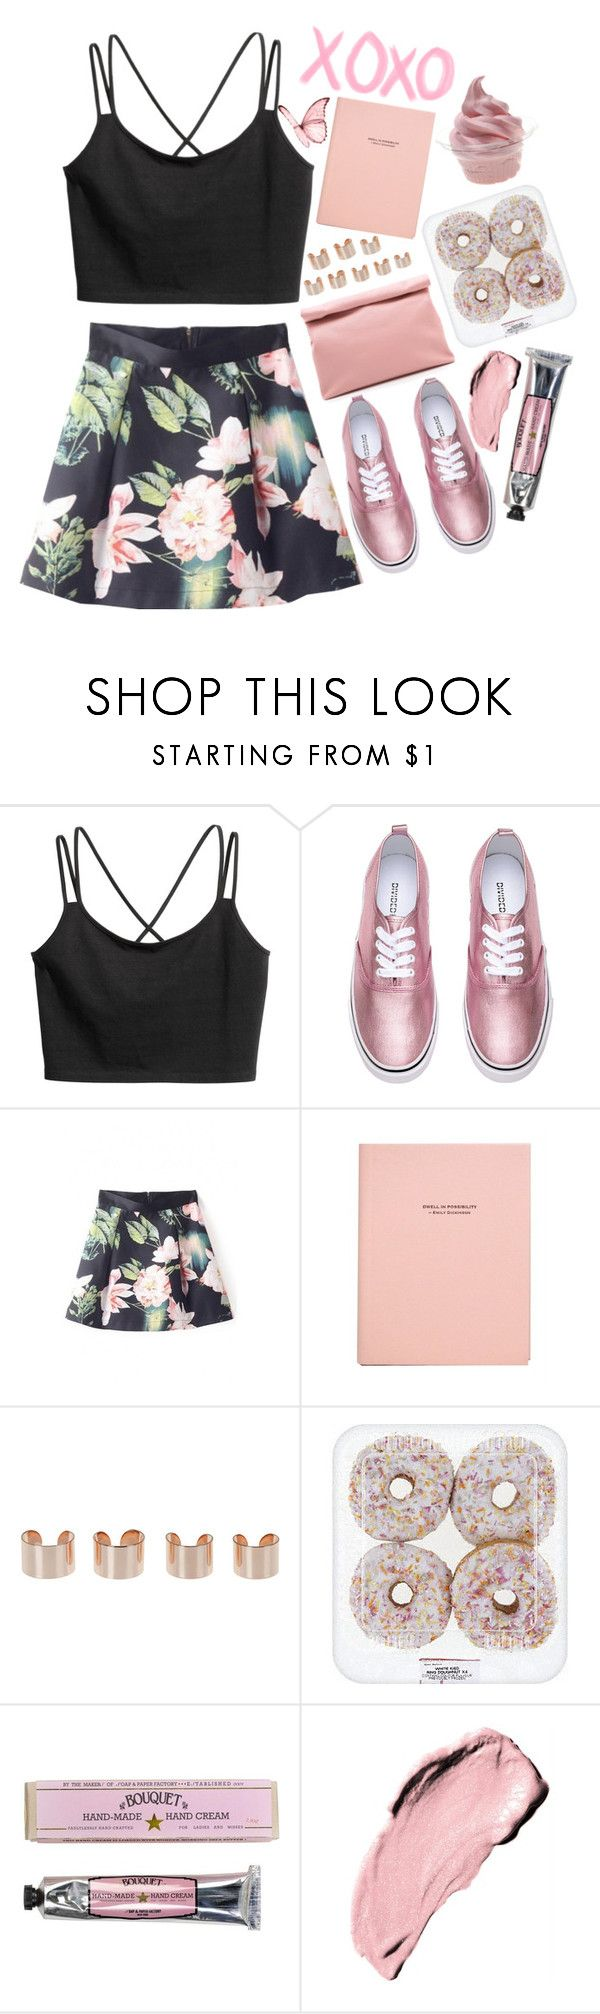 """""""Rock Bottom"""" by lilyyy24 ❤ liked on Polyvore featuring H&M, Marie Turnor, Maison Margiela, Disney and Soap & Paper Factory"""